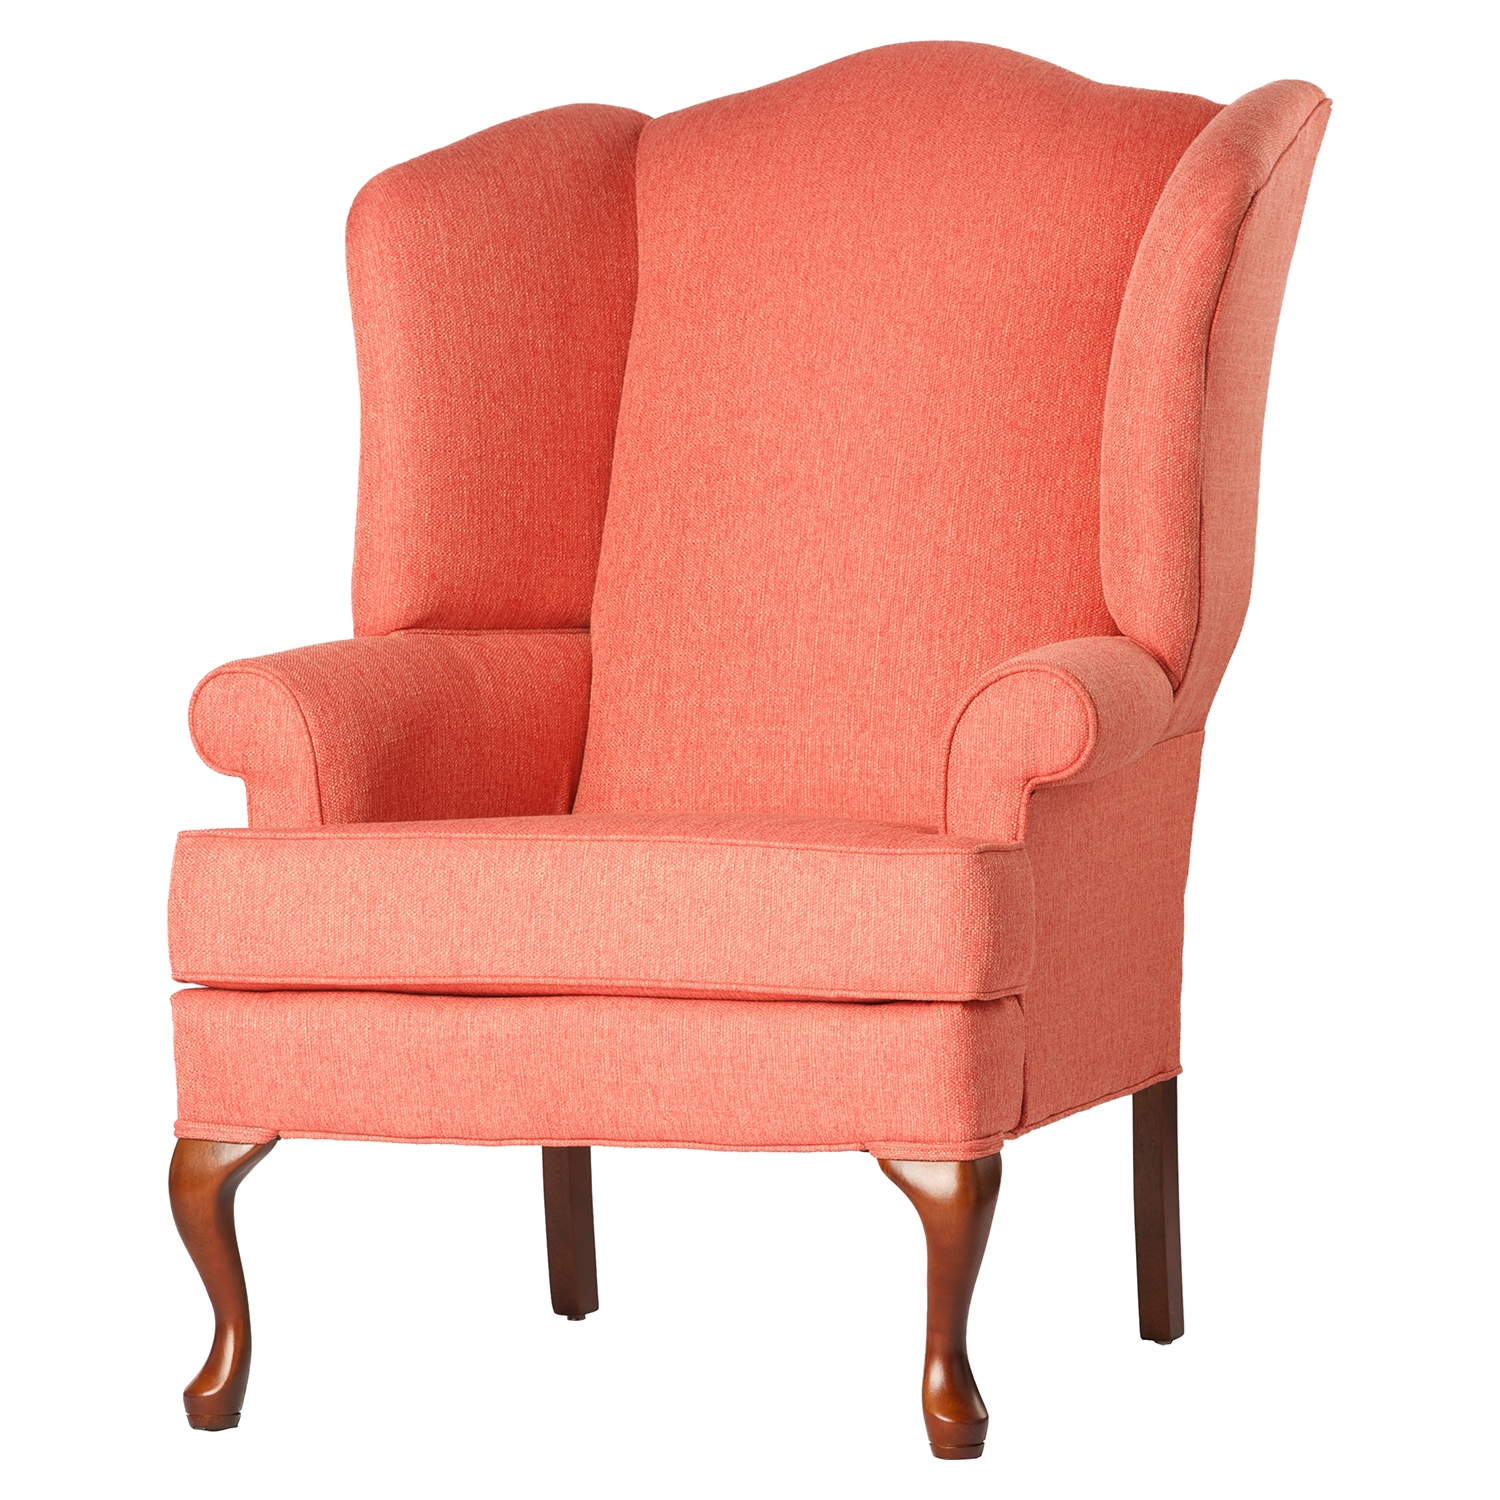 Crawford Wing Back Chair - Coral, Cherry